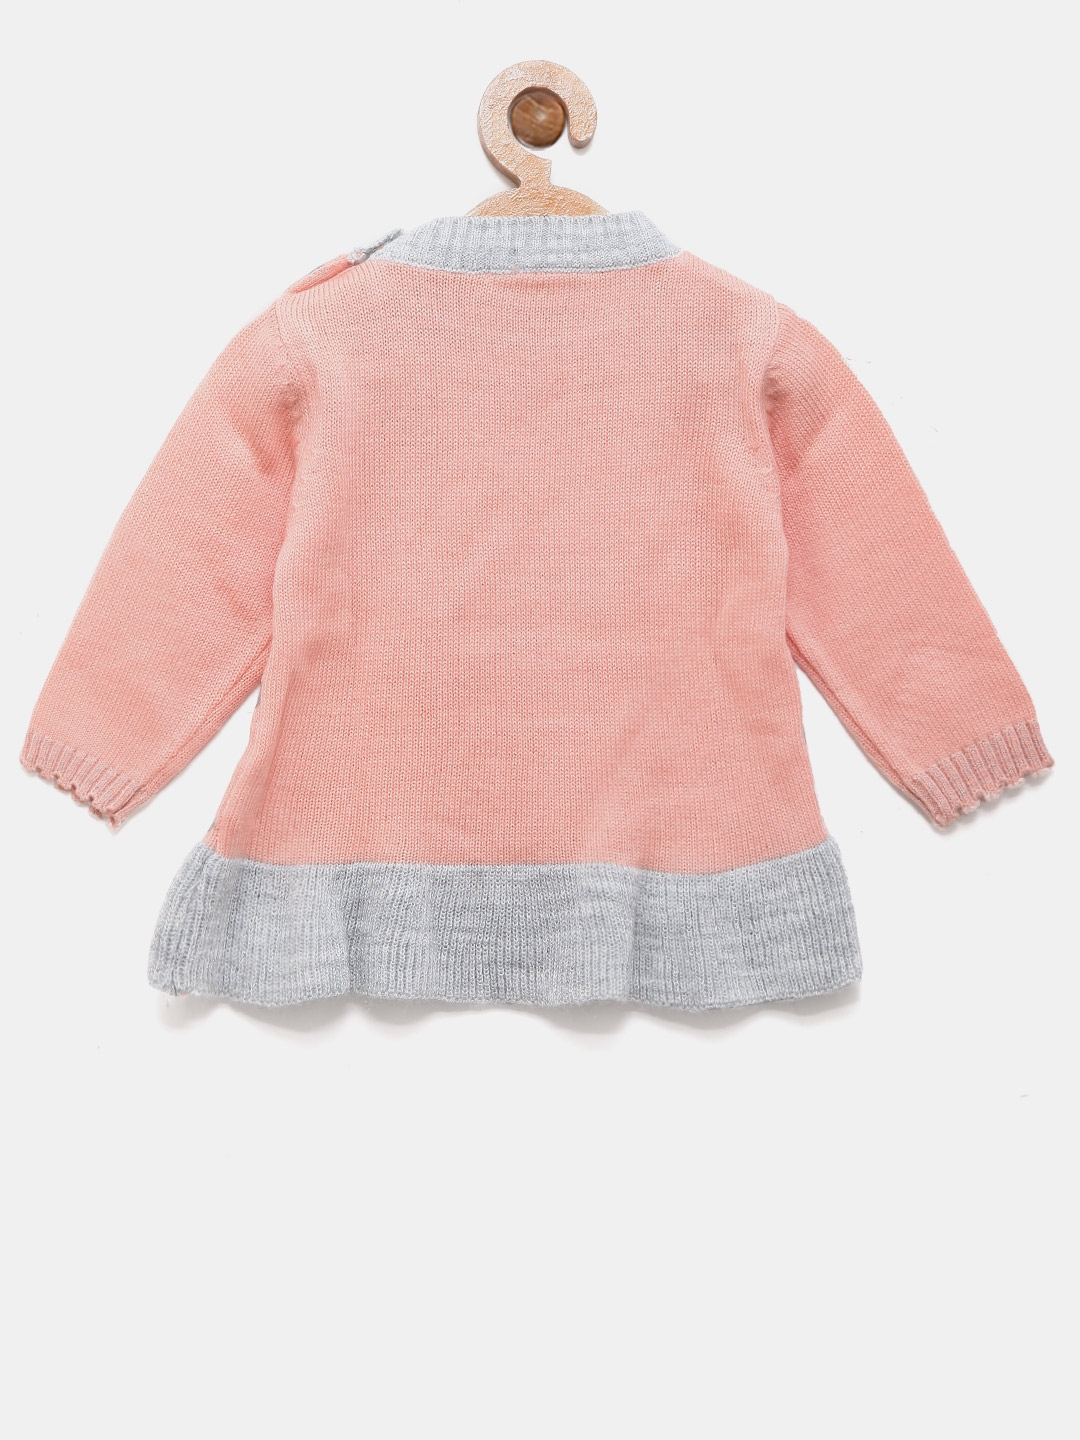 8aacaf149046 Buy Wingsfield Girls Peach Coloured   Silver Printed Sweater ...